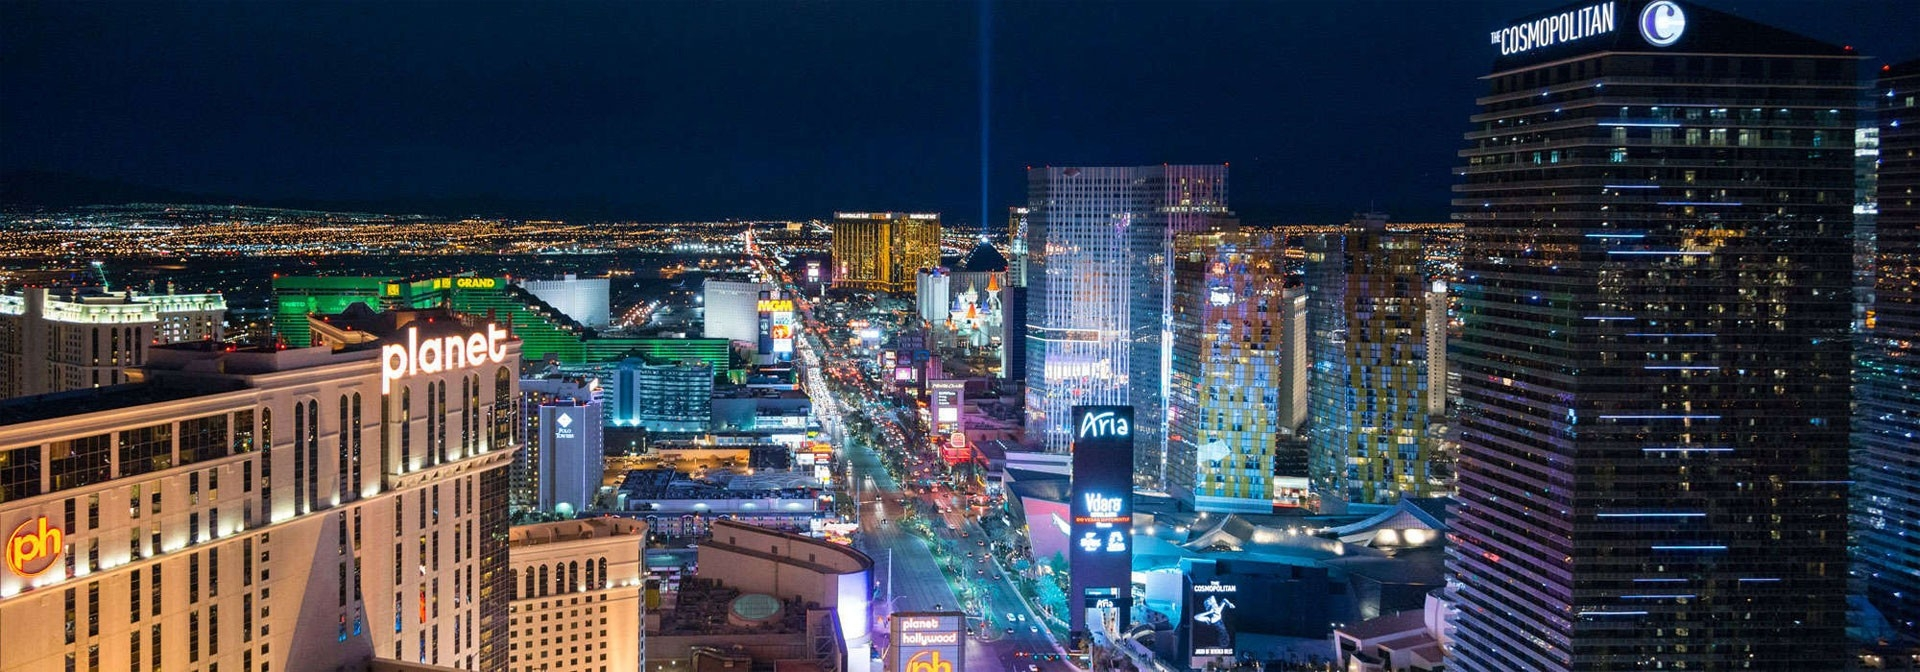 Las Vegas January 2020 Shows, Concerts, Events & Clubs Calendar-Las Vegas Event Calendar January 2020